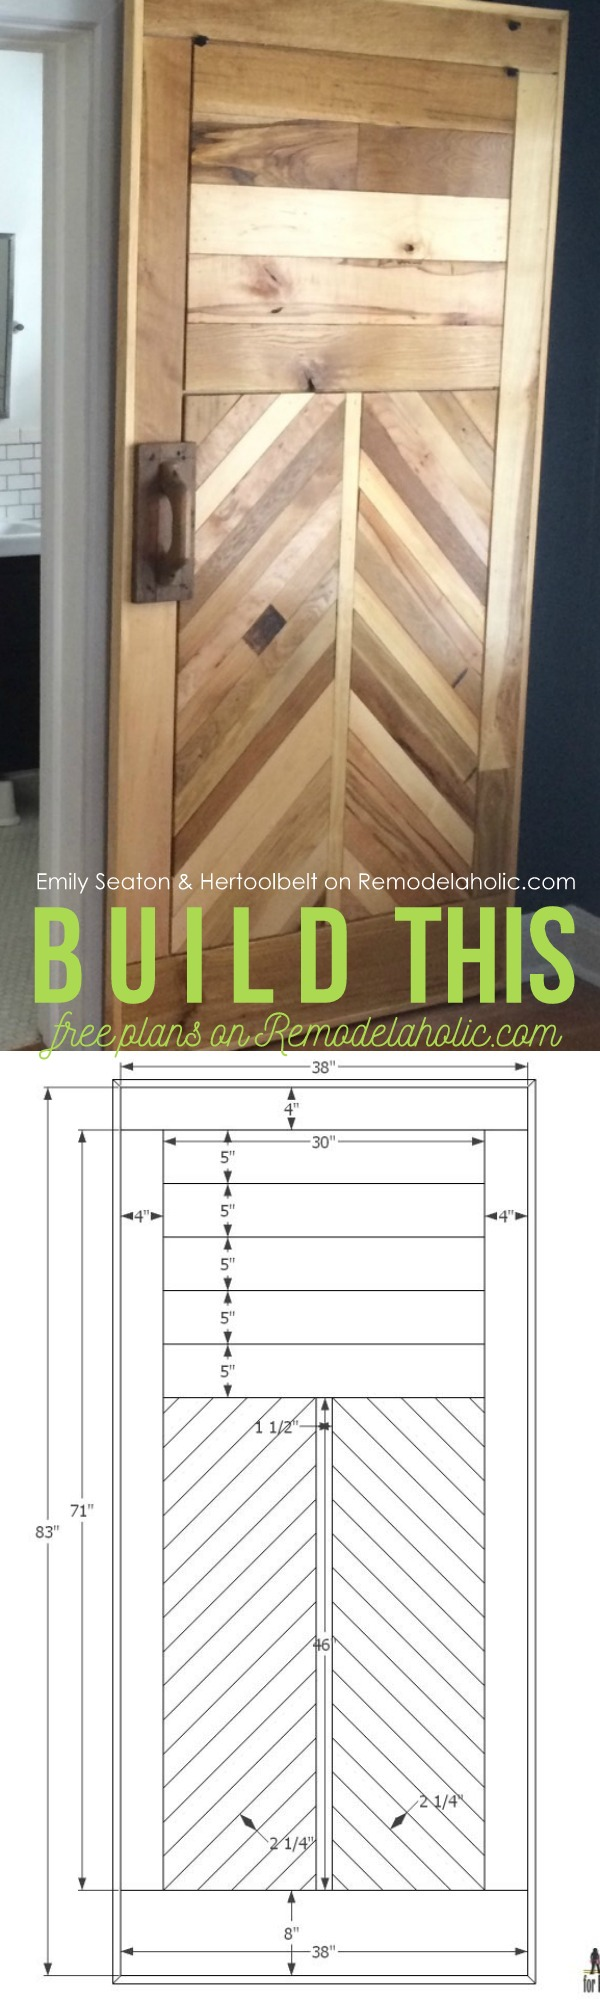 Free Reclaimed Wood Chevron Barn Door Building Plan and Tutorial on  @Remodelaholic - Remodelaholic How To Build A Wood Chevron Barn Door